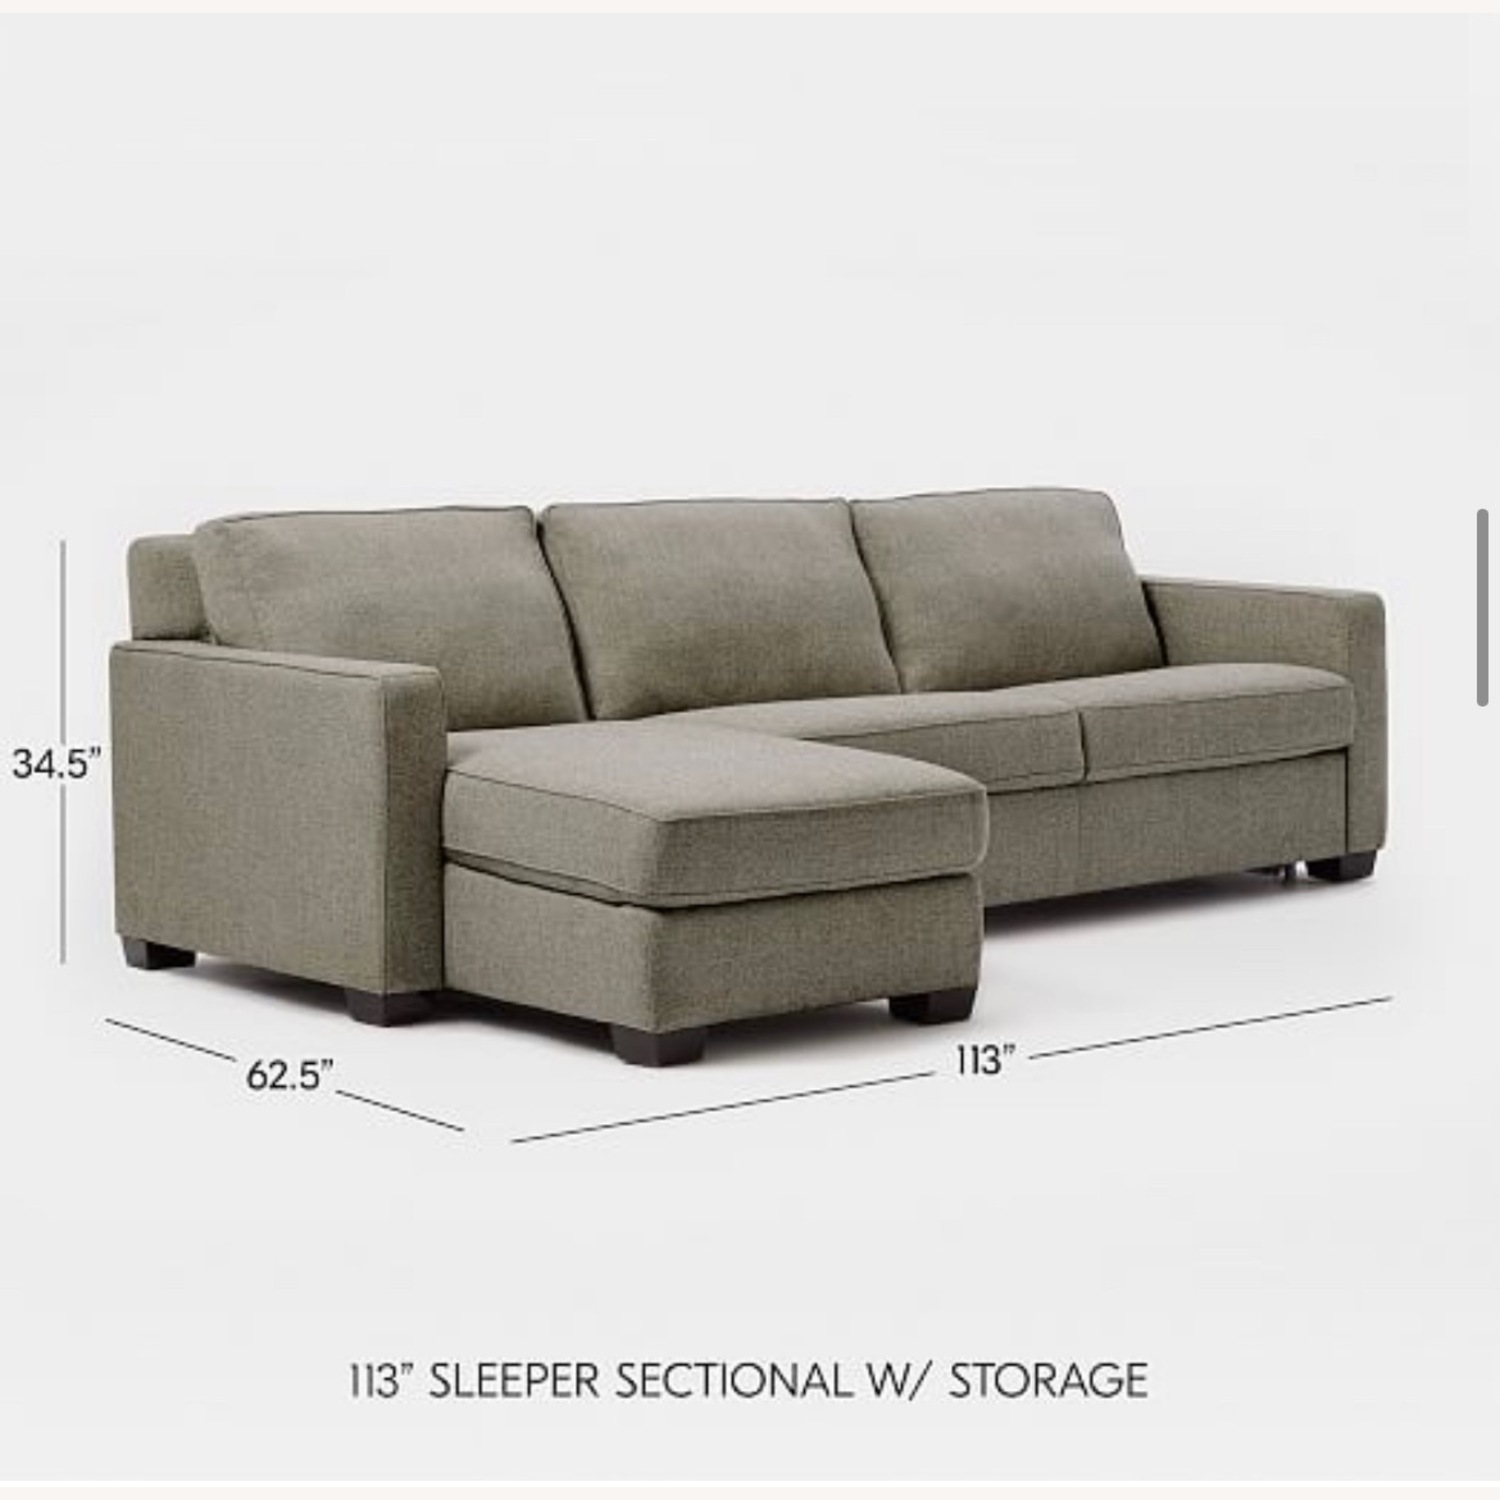 West Elm Henry Sleeper Sofa with Storage Chaise - image-2